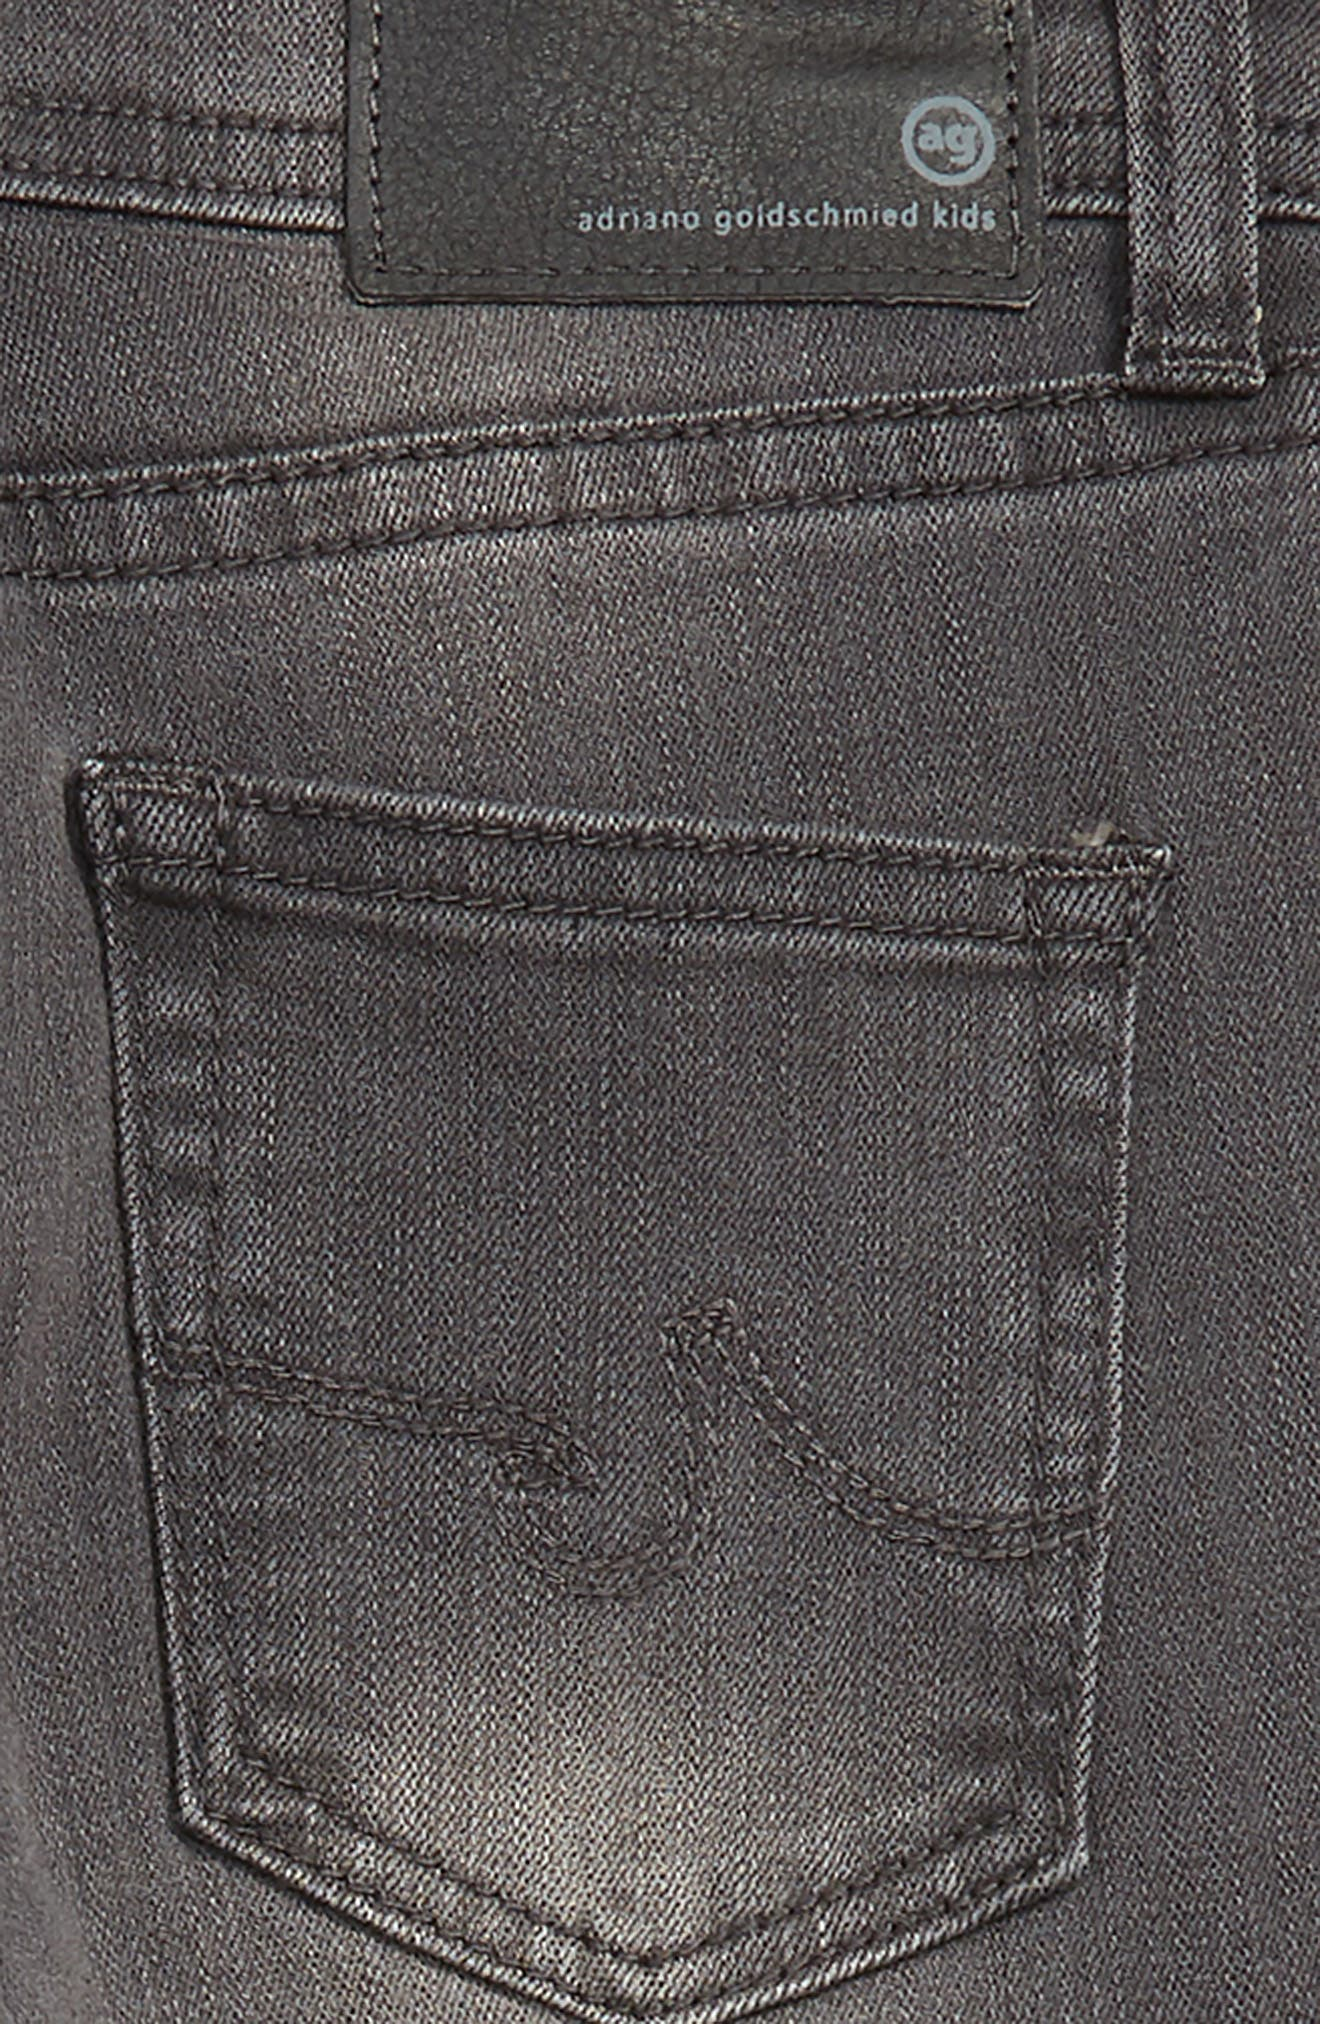 adriano goldschmied kids The Kingston Slim Jeans,                             Alternate thumbnail 3, color,                             097